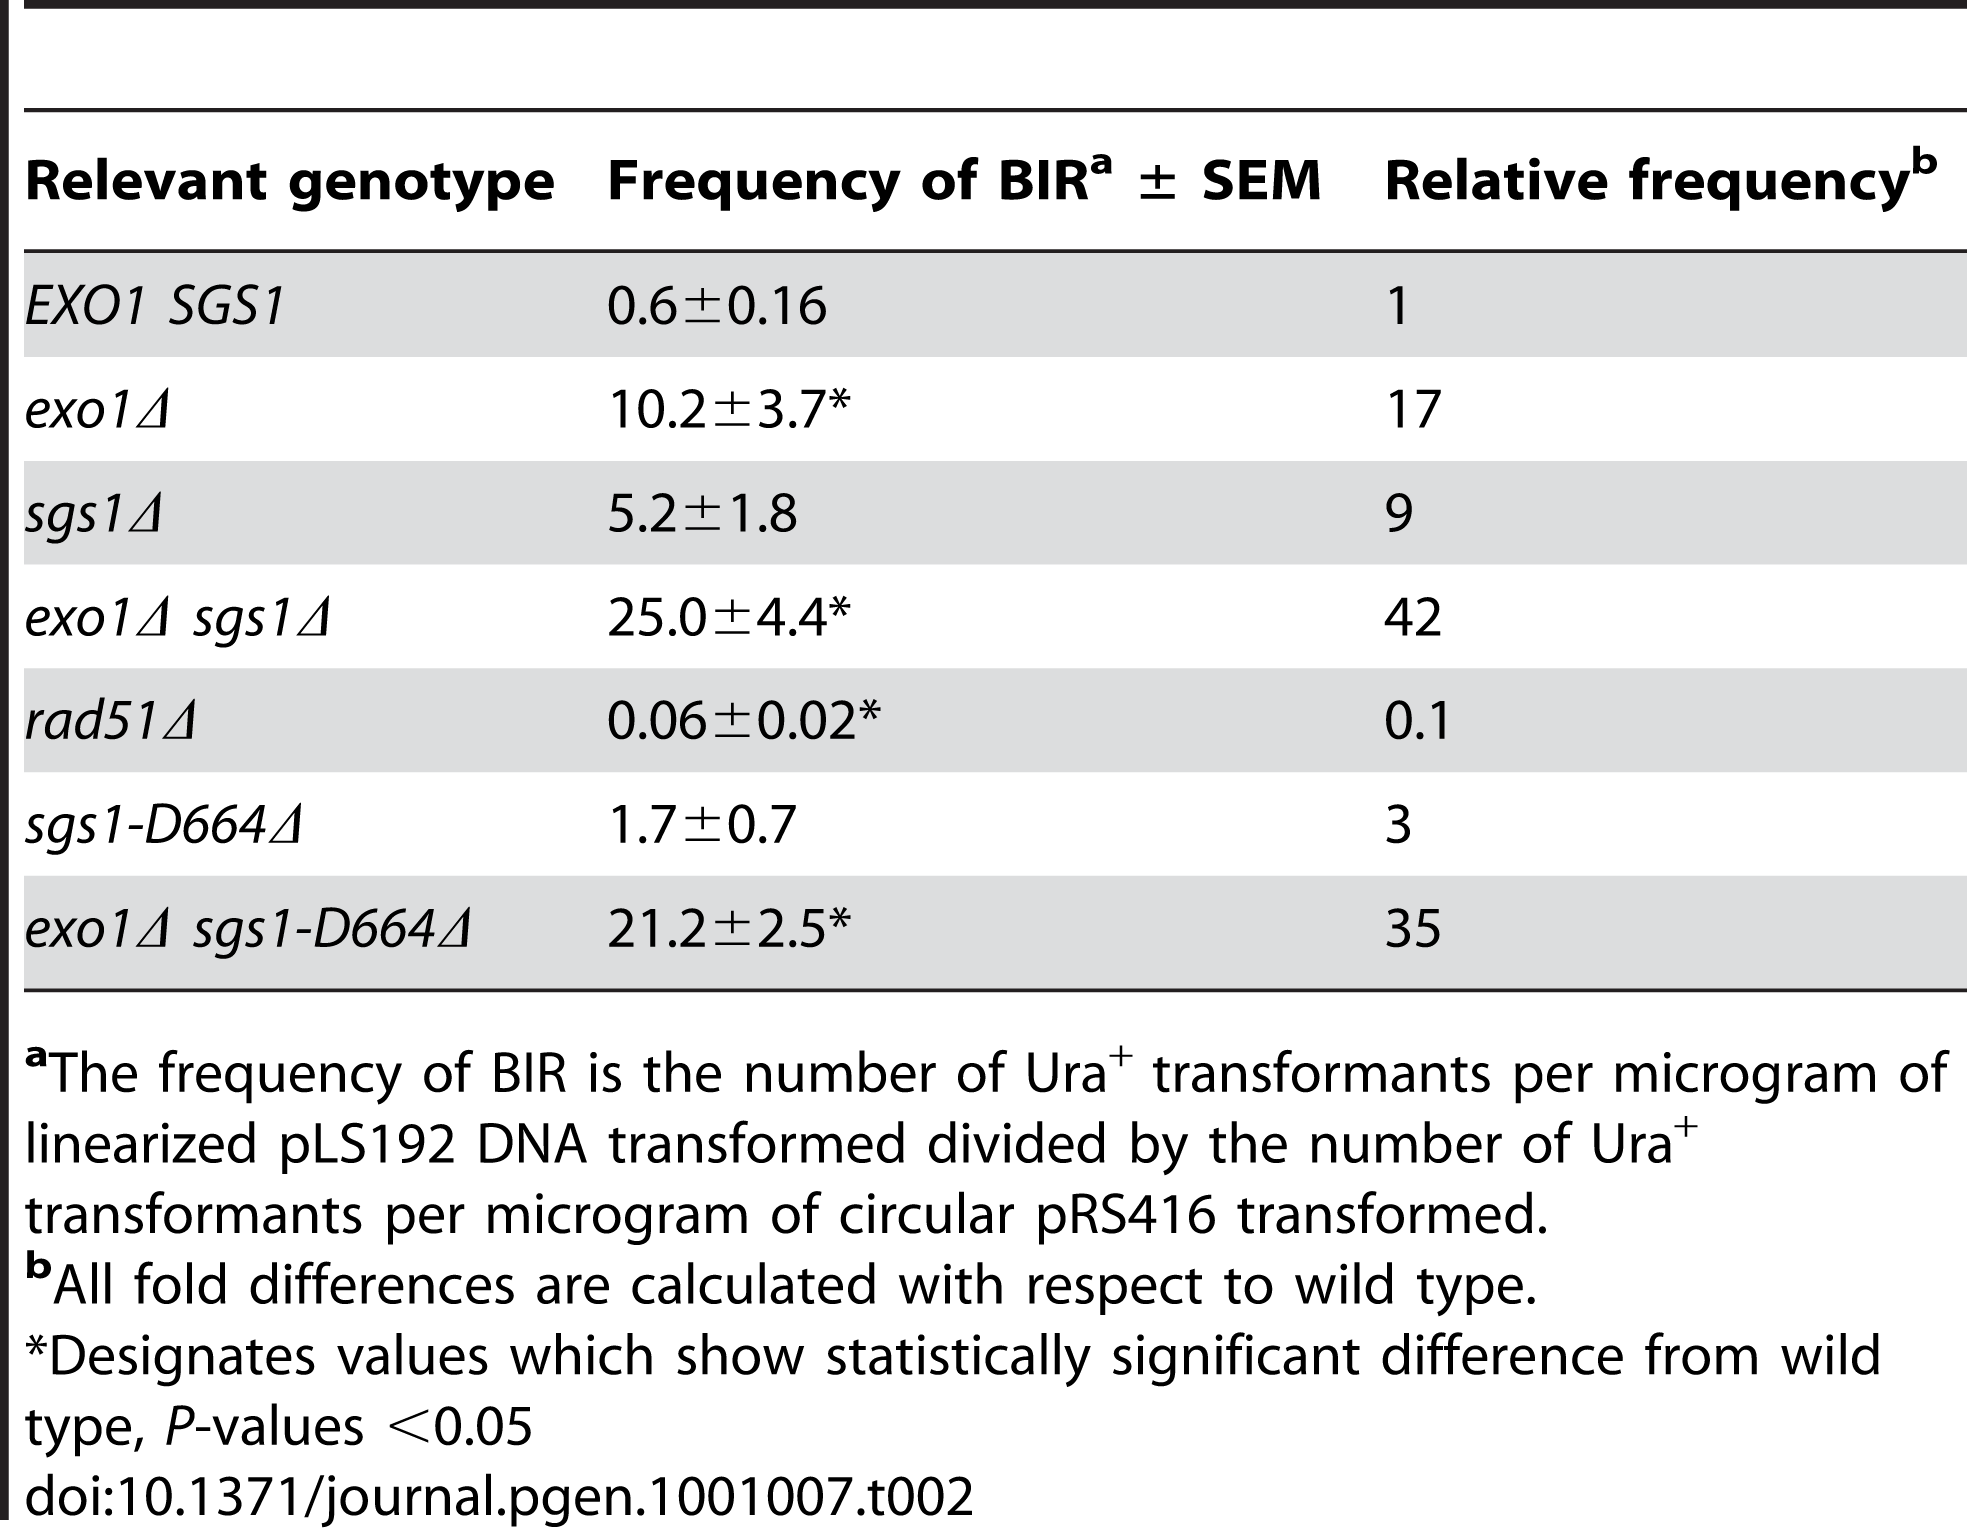 Frequency of BIR in the transformation assay.